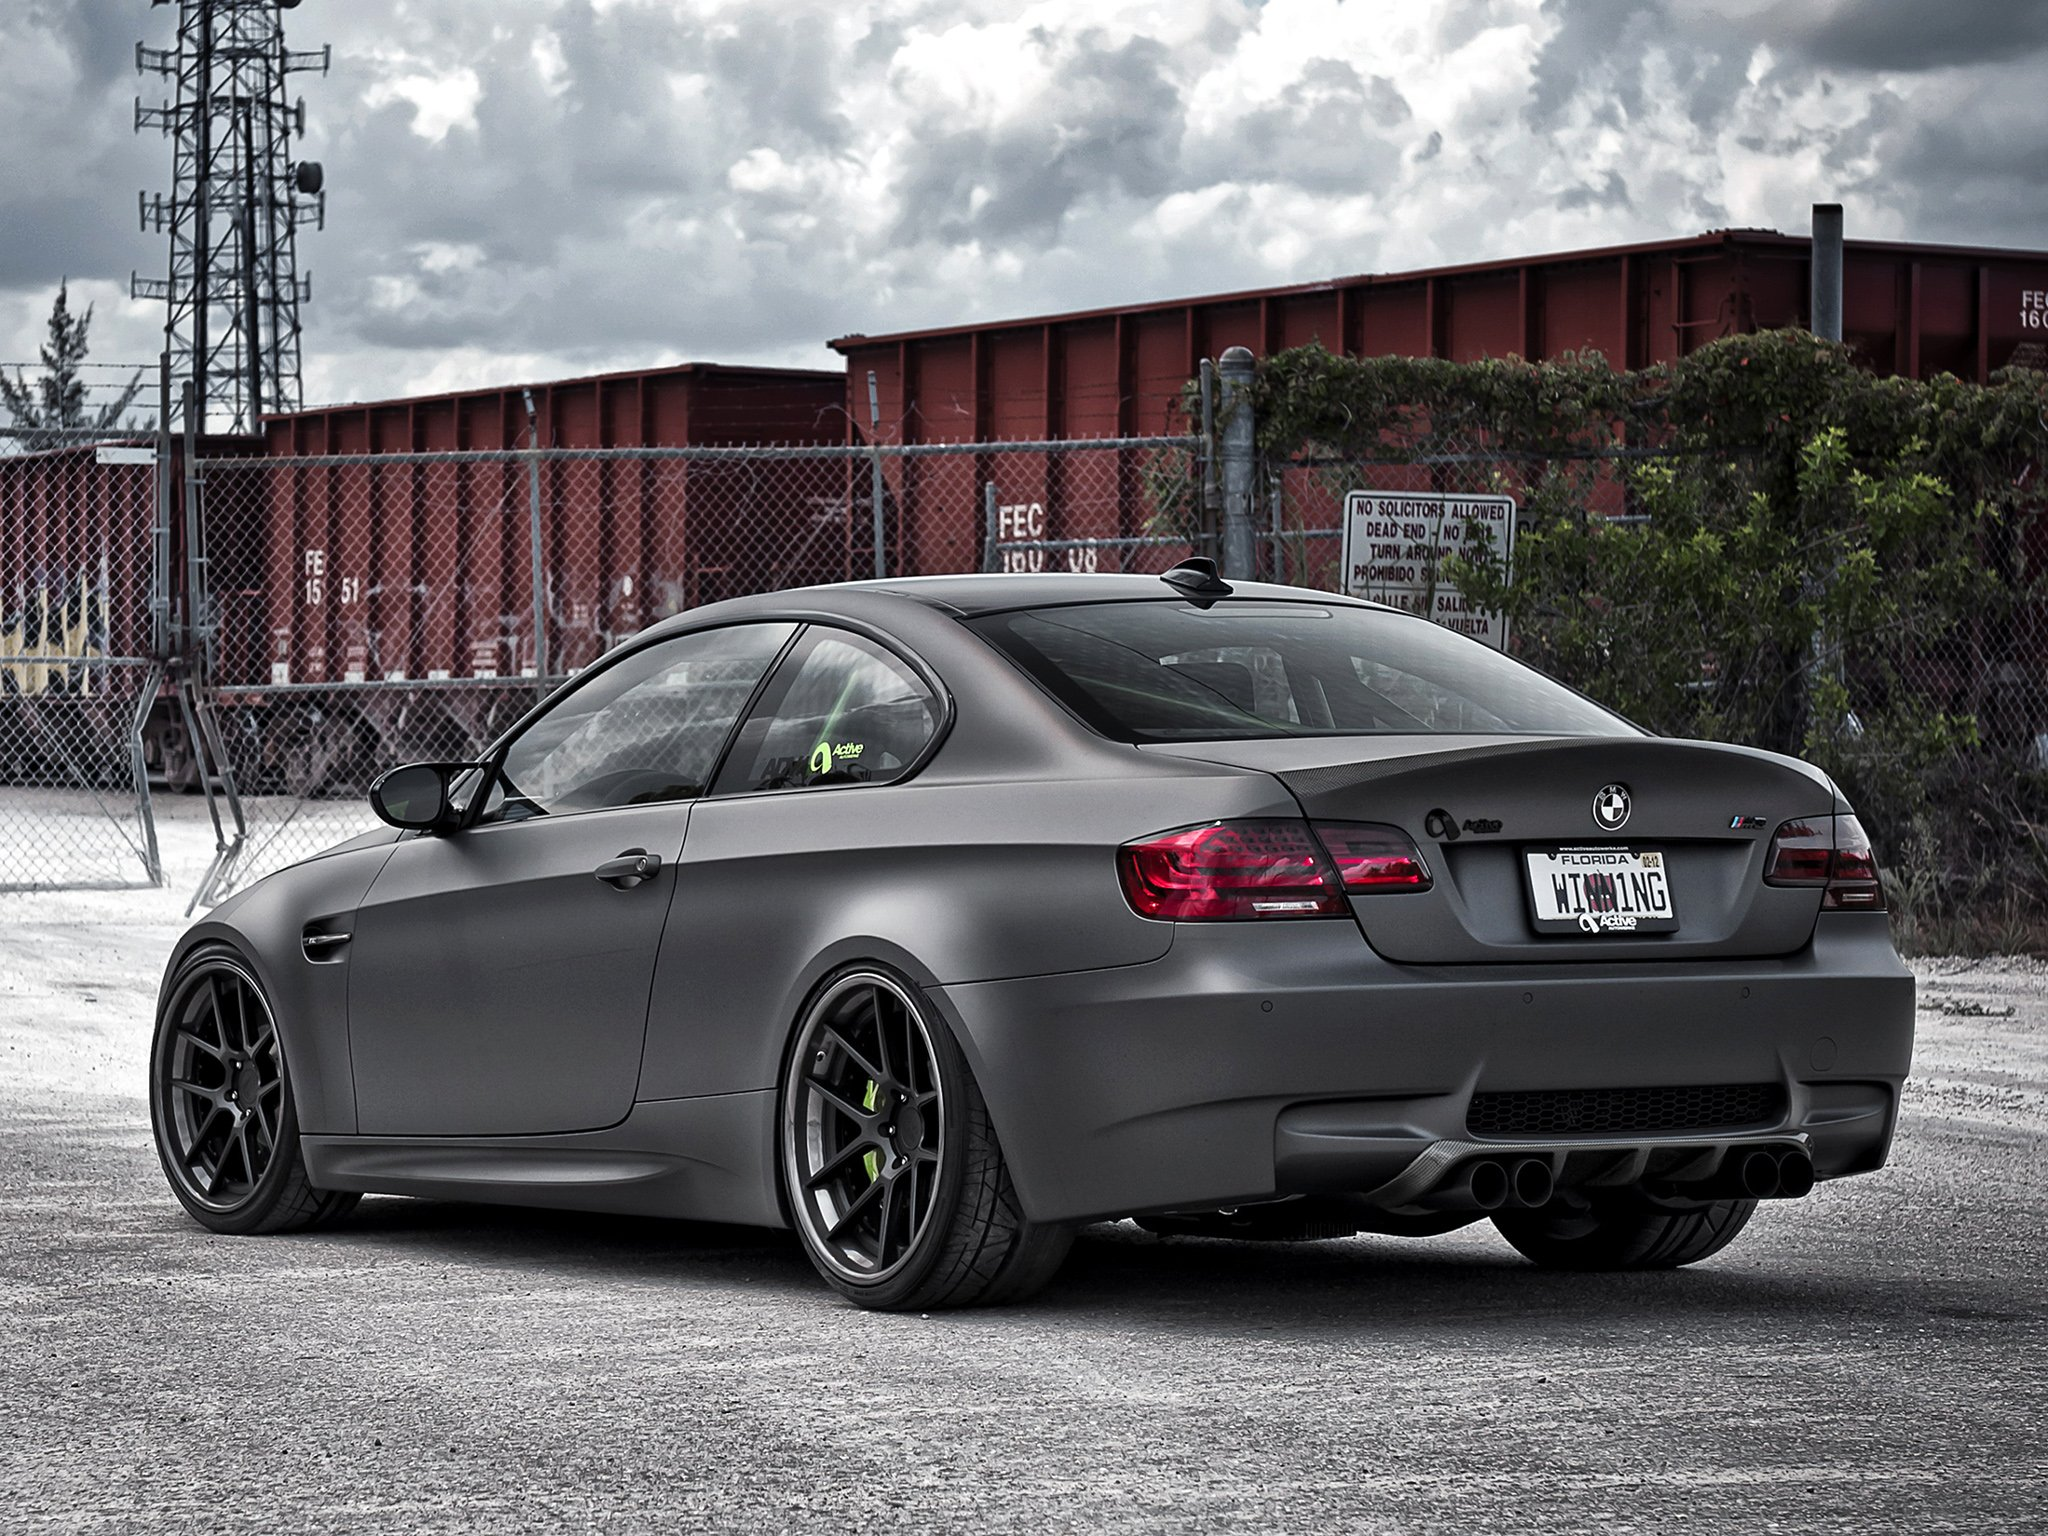 Active Autowerke Bmw M3 Coupe E92 Cars Modified 2009 Wallpaper 2048x1536 761104 Wallpaperup